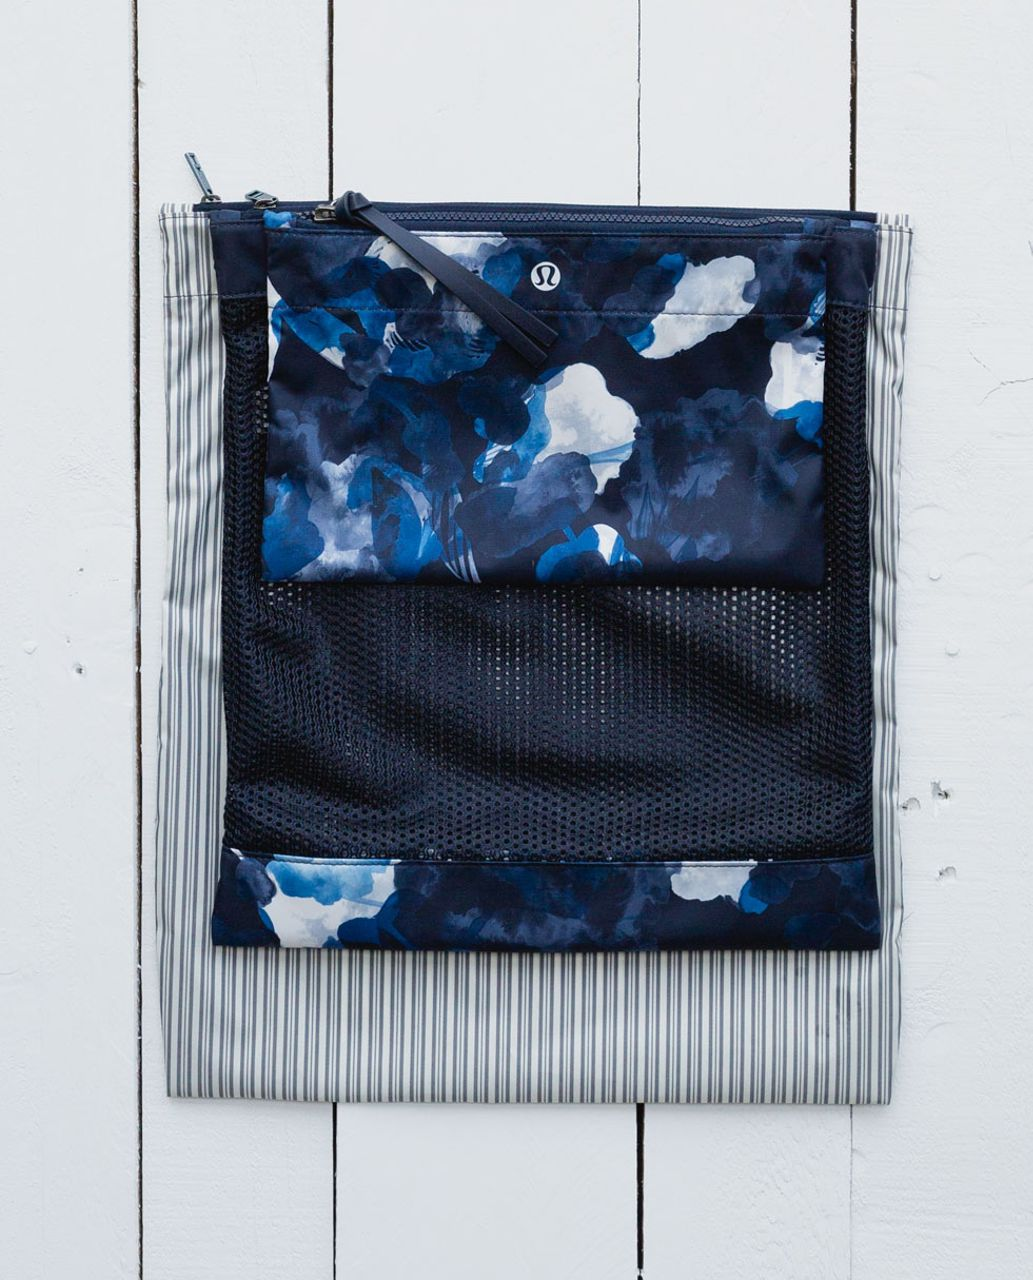 Lululemon Sweat Happens Liner Bags - Inky Floral Inkwell Blue Calm / Inkwell / Pine Stripe Inkwell Ghost